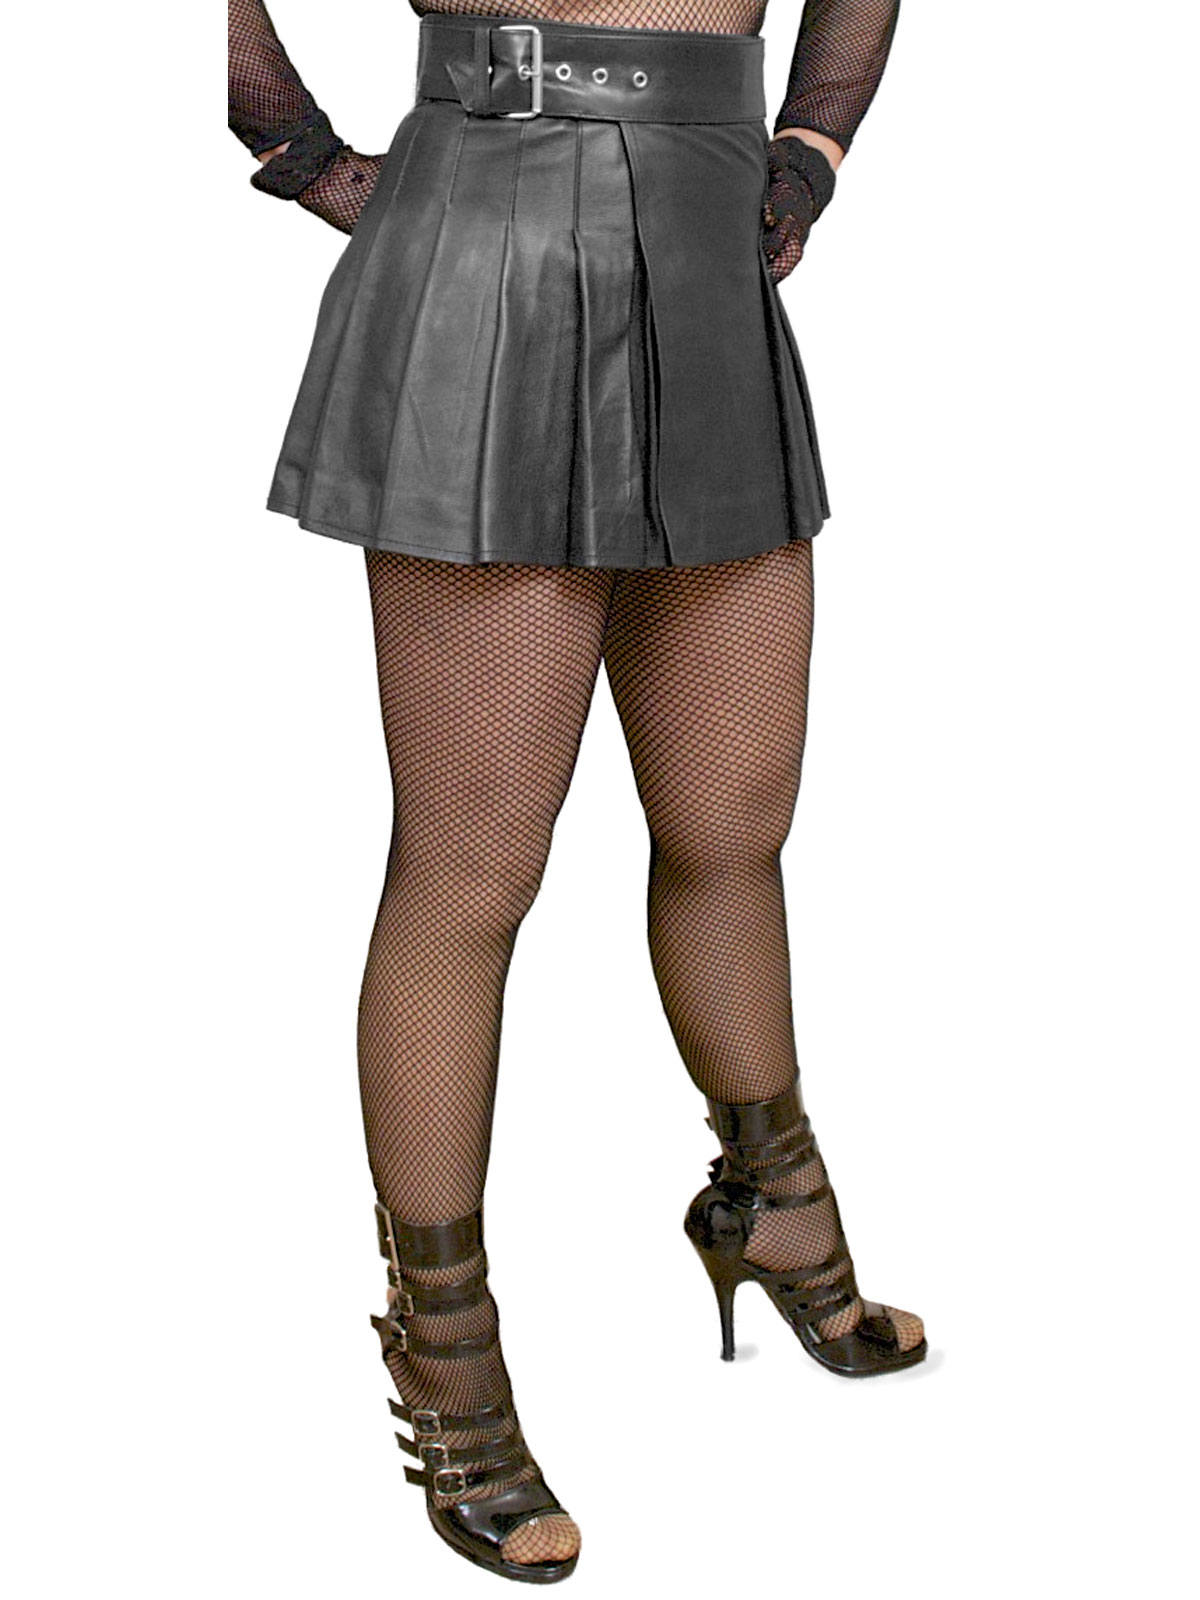 Wrap-around Leather Mini Skirt Kilt - Tout Ensemble